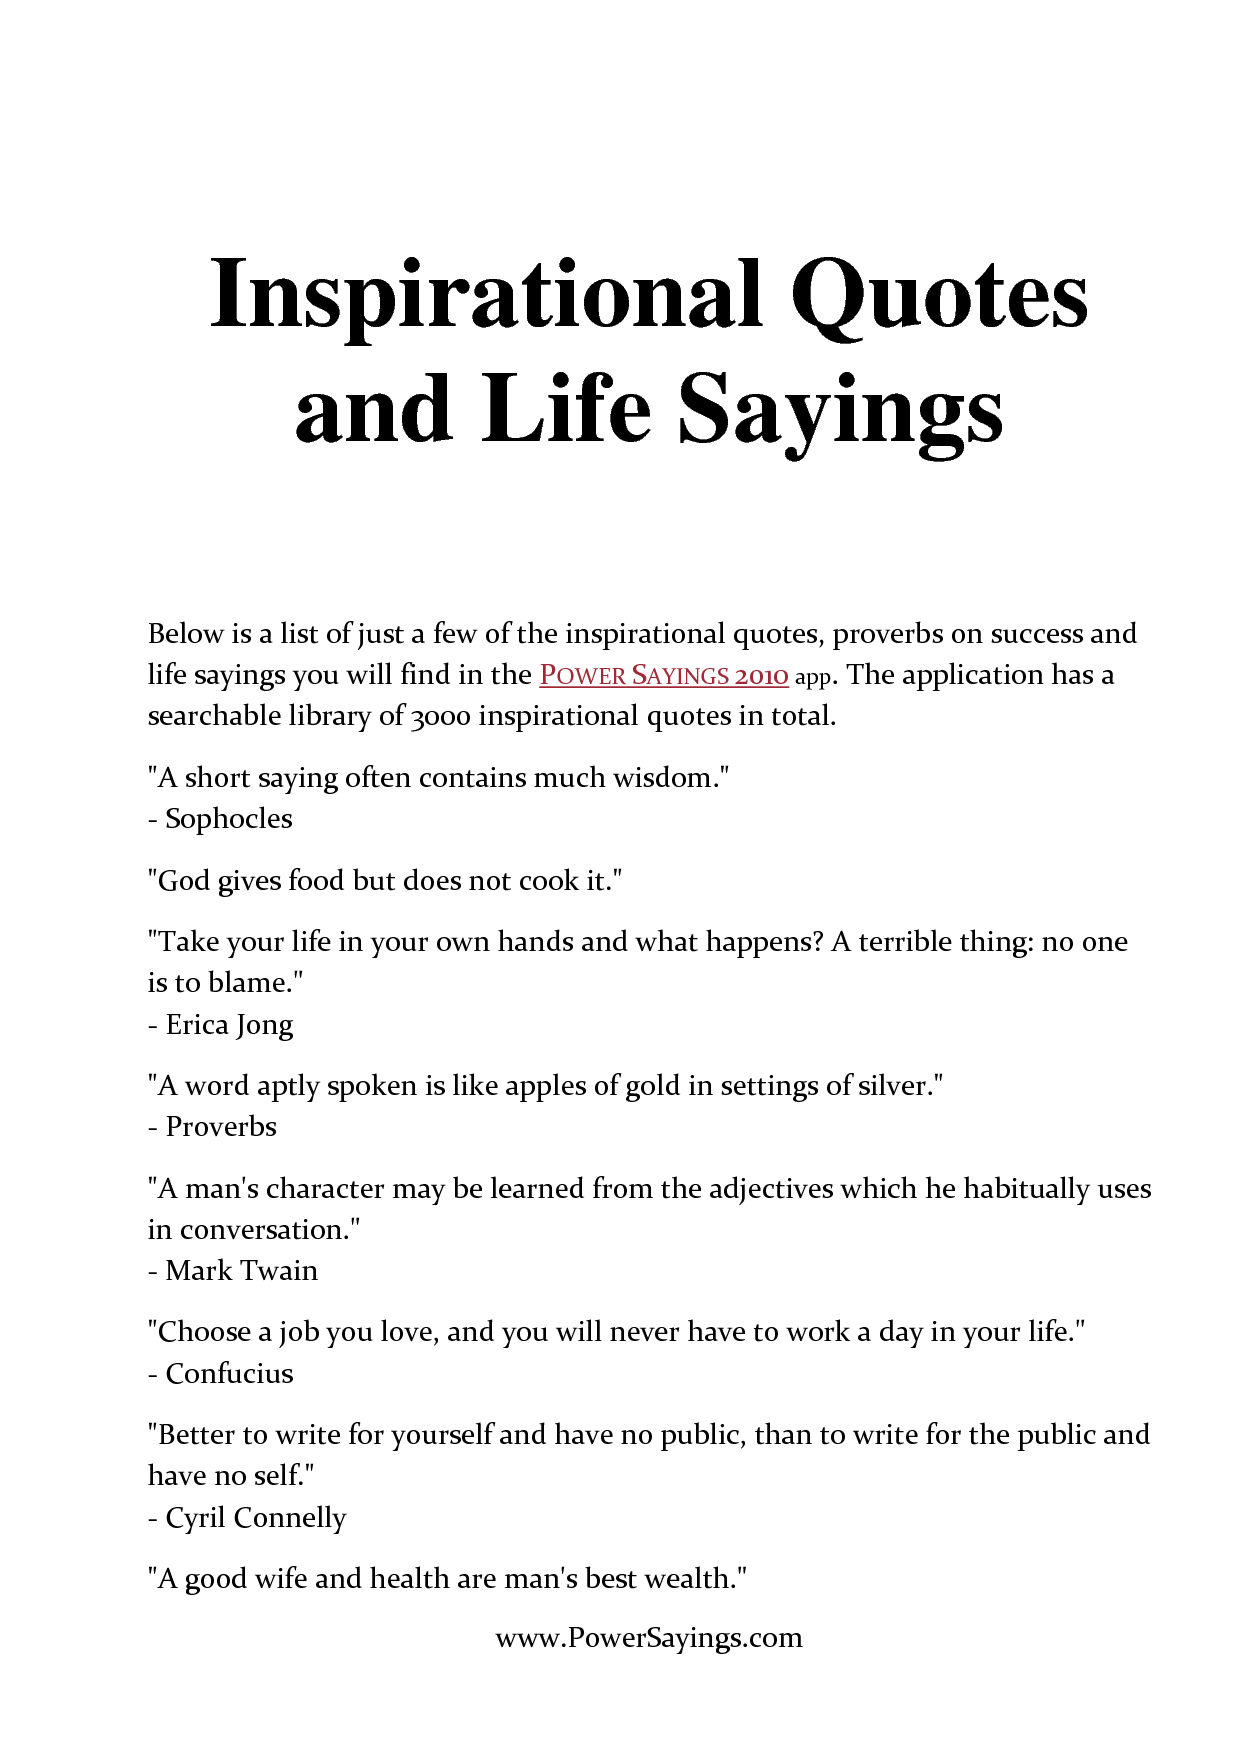 List Of Inspirational Quotes About Life Amusing List Of Inspirational Quotes About Life 01  Quotesbae